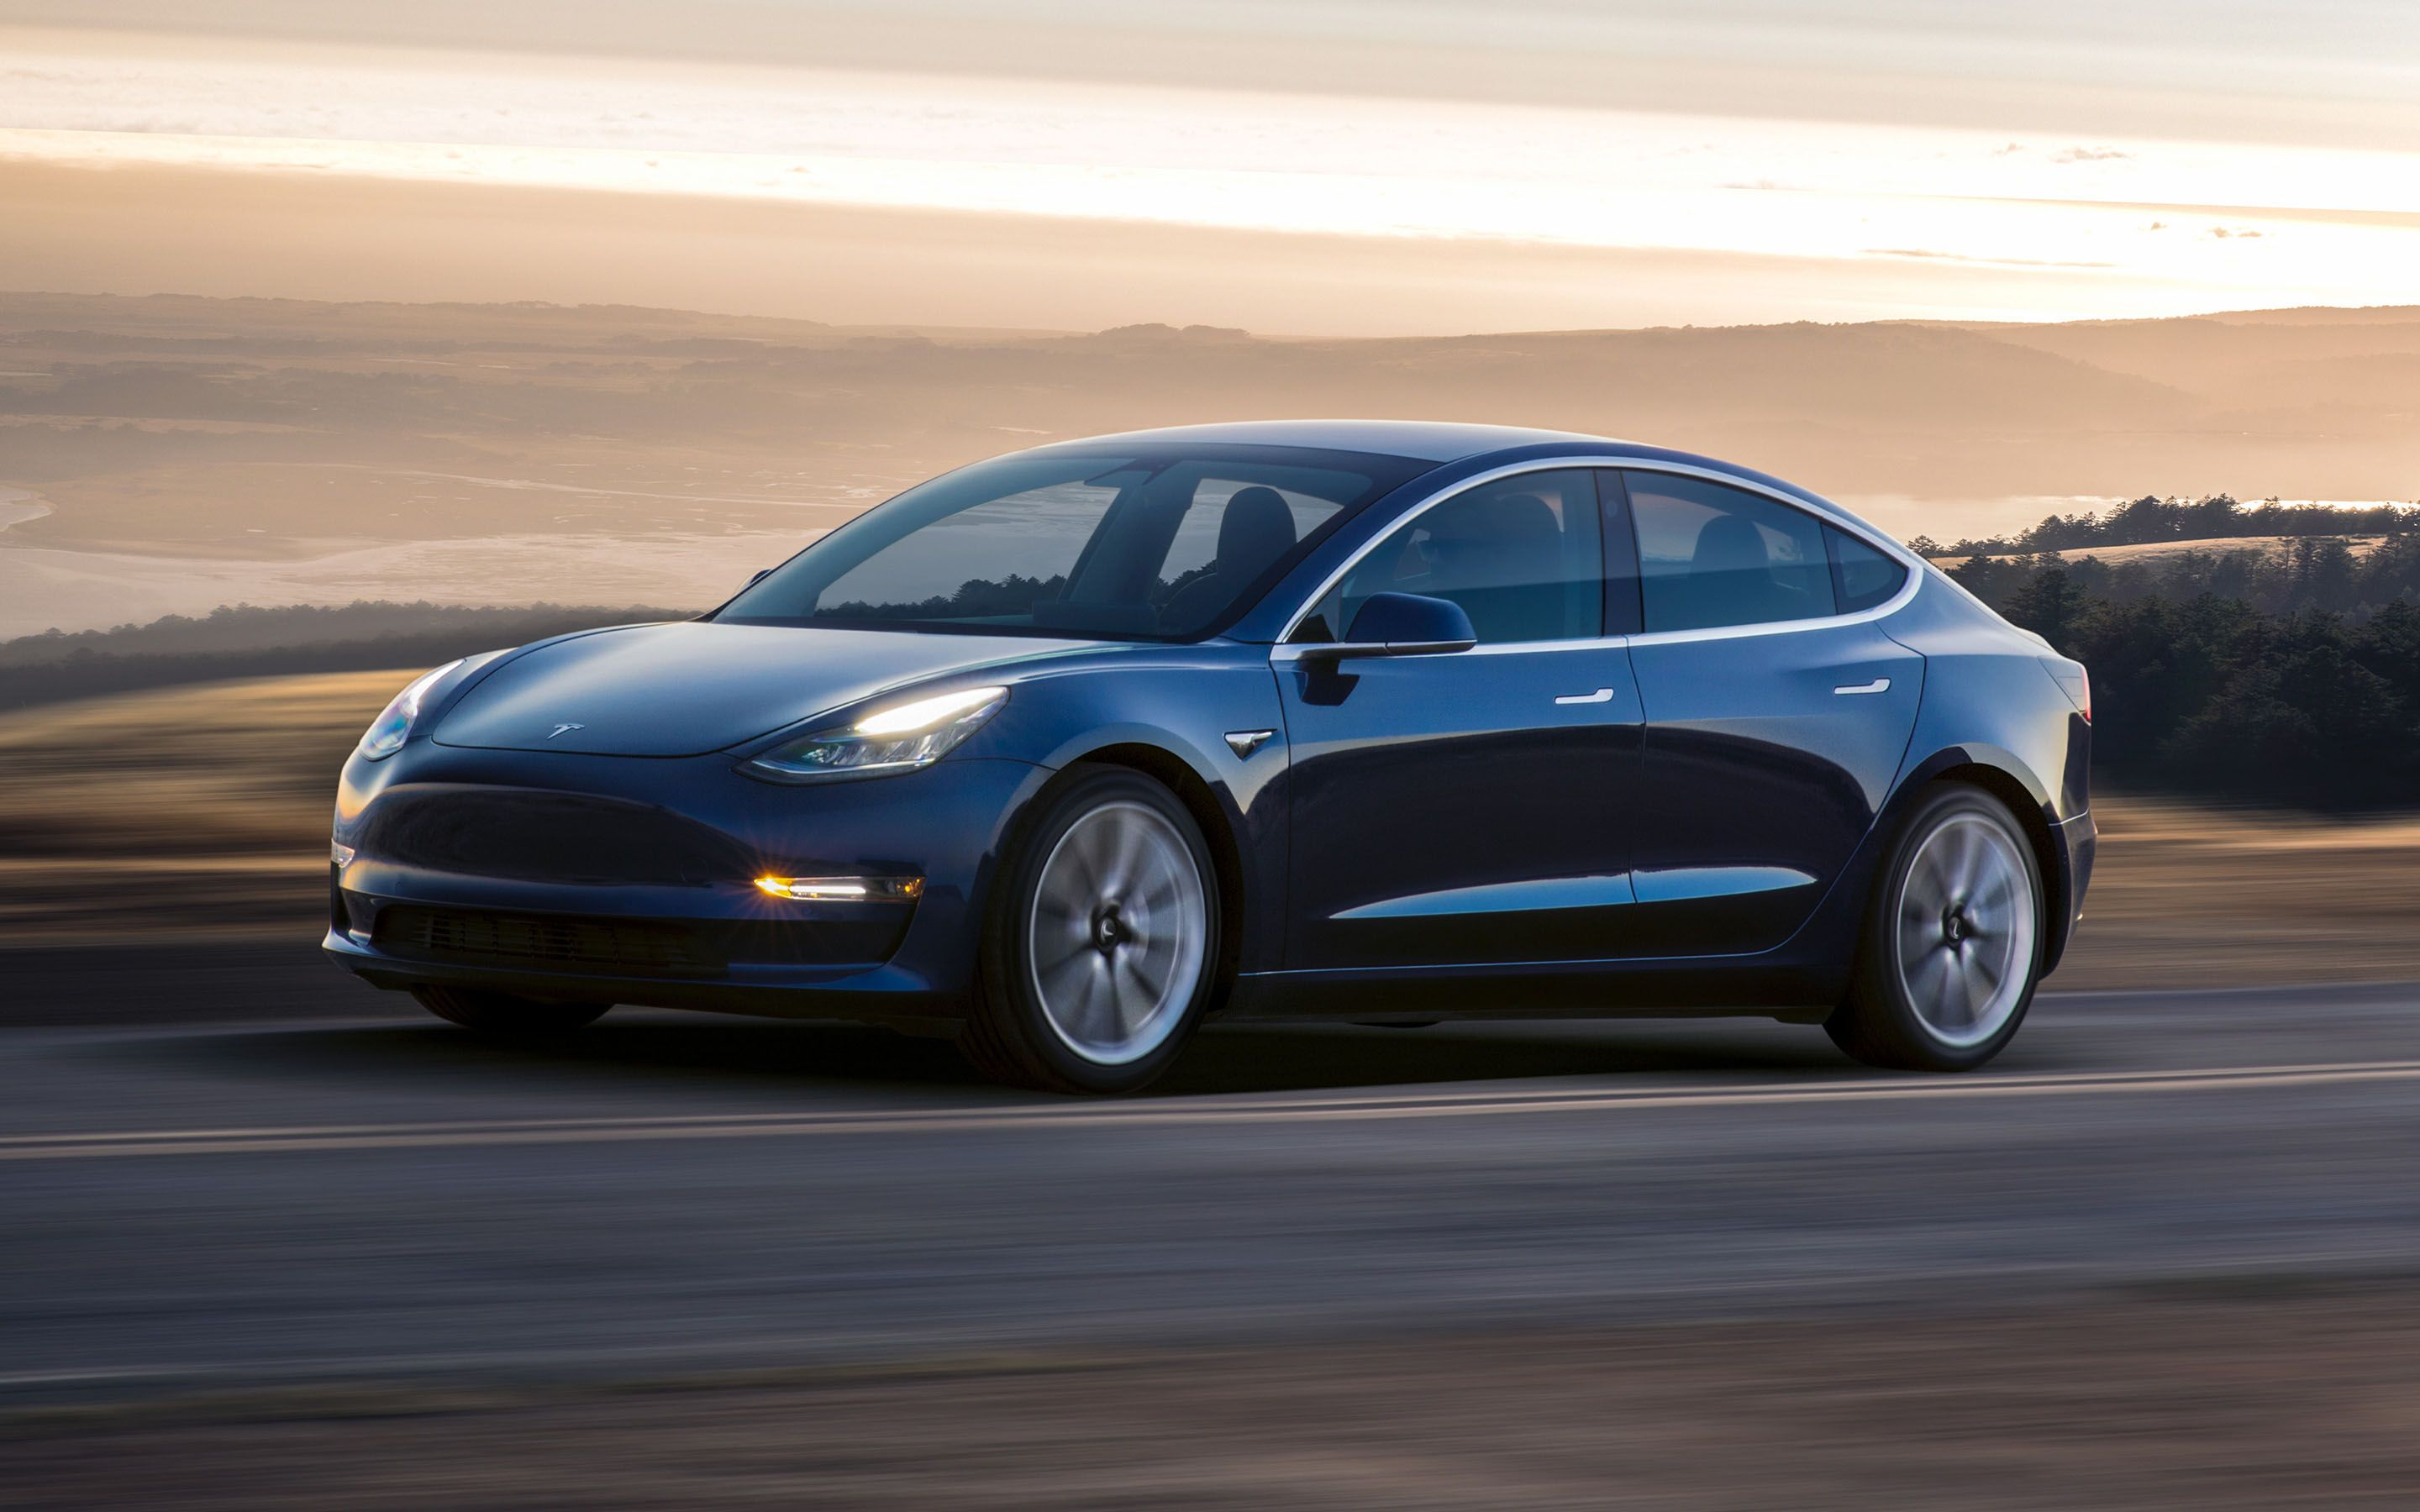 Consumer Reports won't recommend Tesla Model 3 after giving